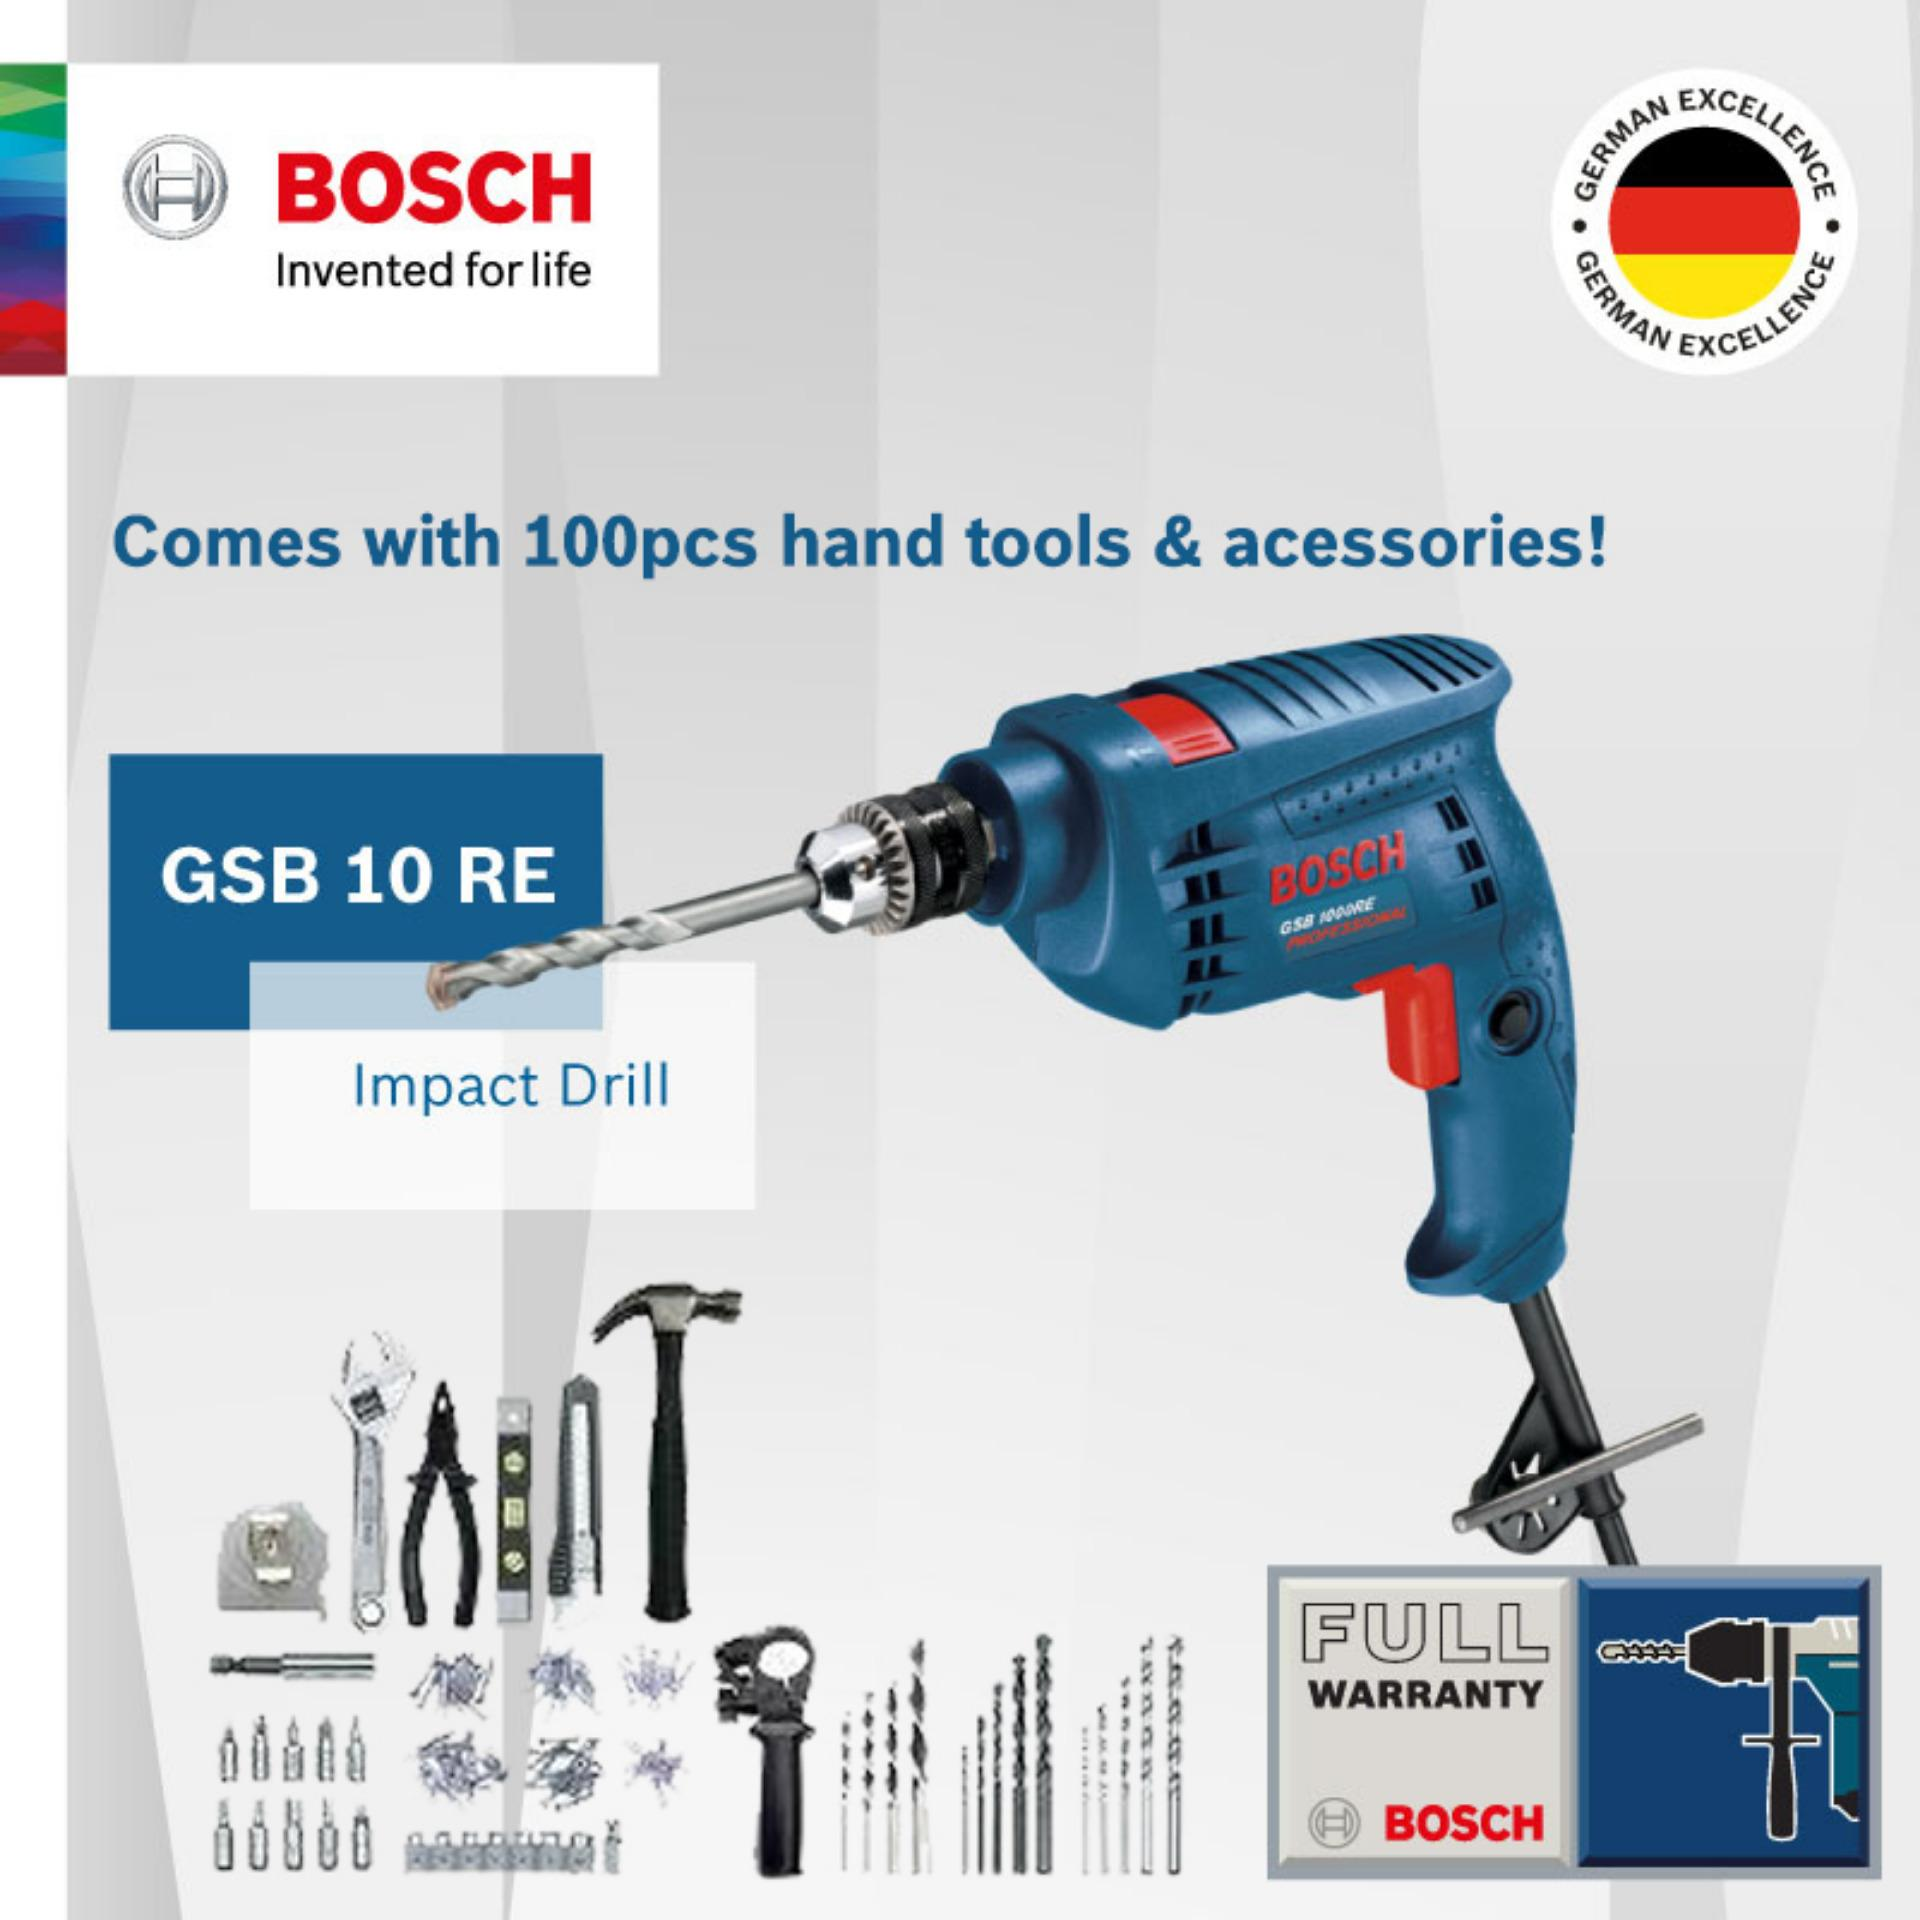 Bosch GSB 10 RE Impact Drill Kit come with 100pcs Hand Tools & Accessories  Singapore